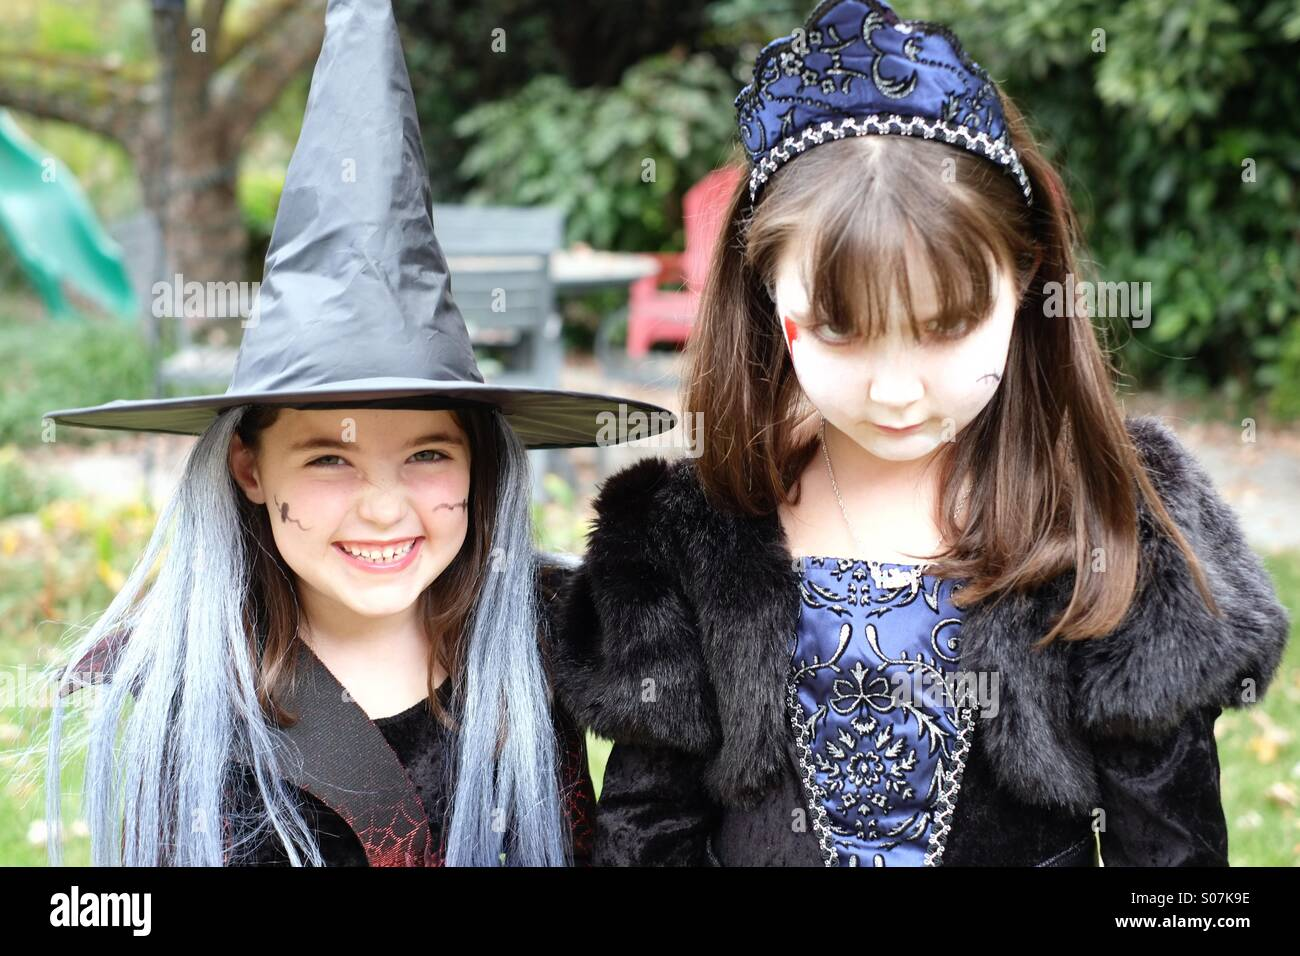 Two spooky little girls acting the part for Halloween Stock Photo